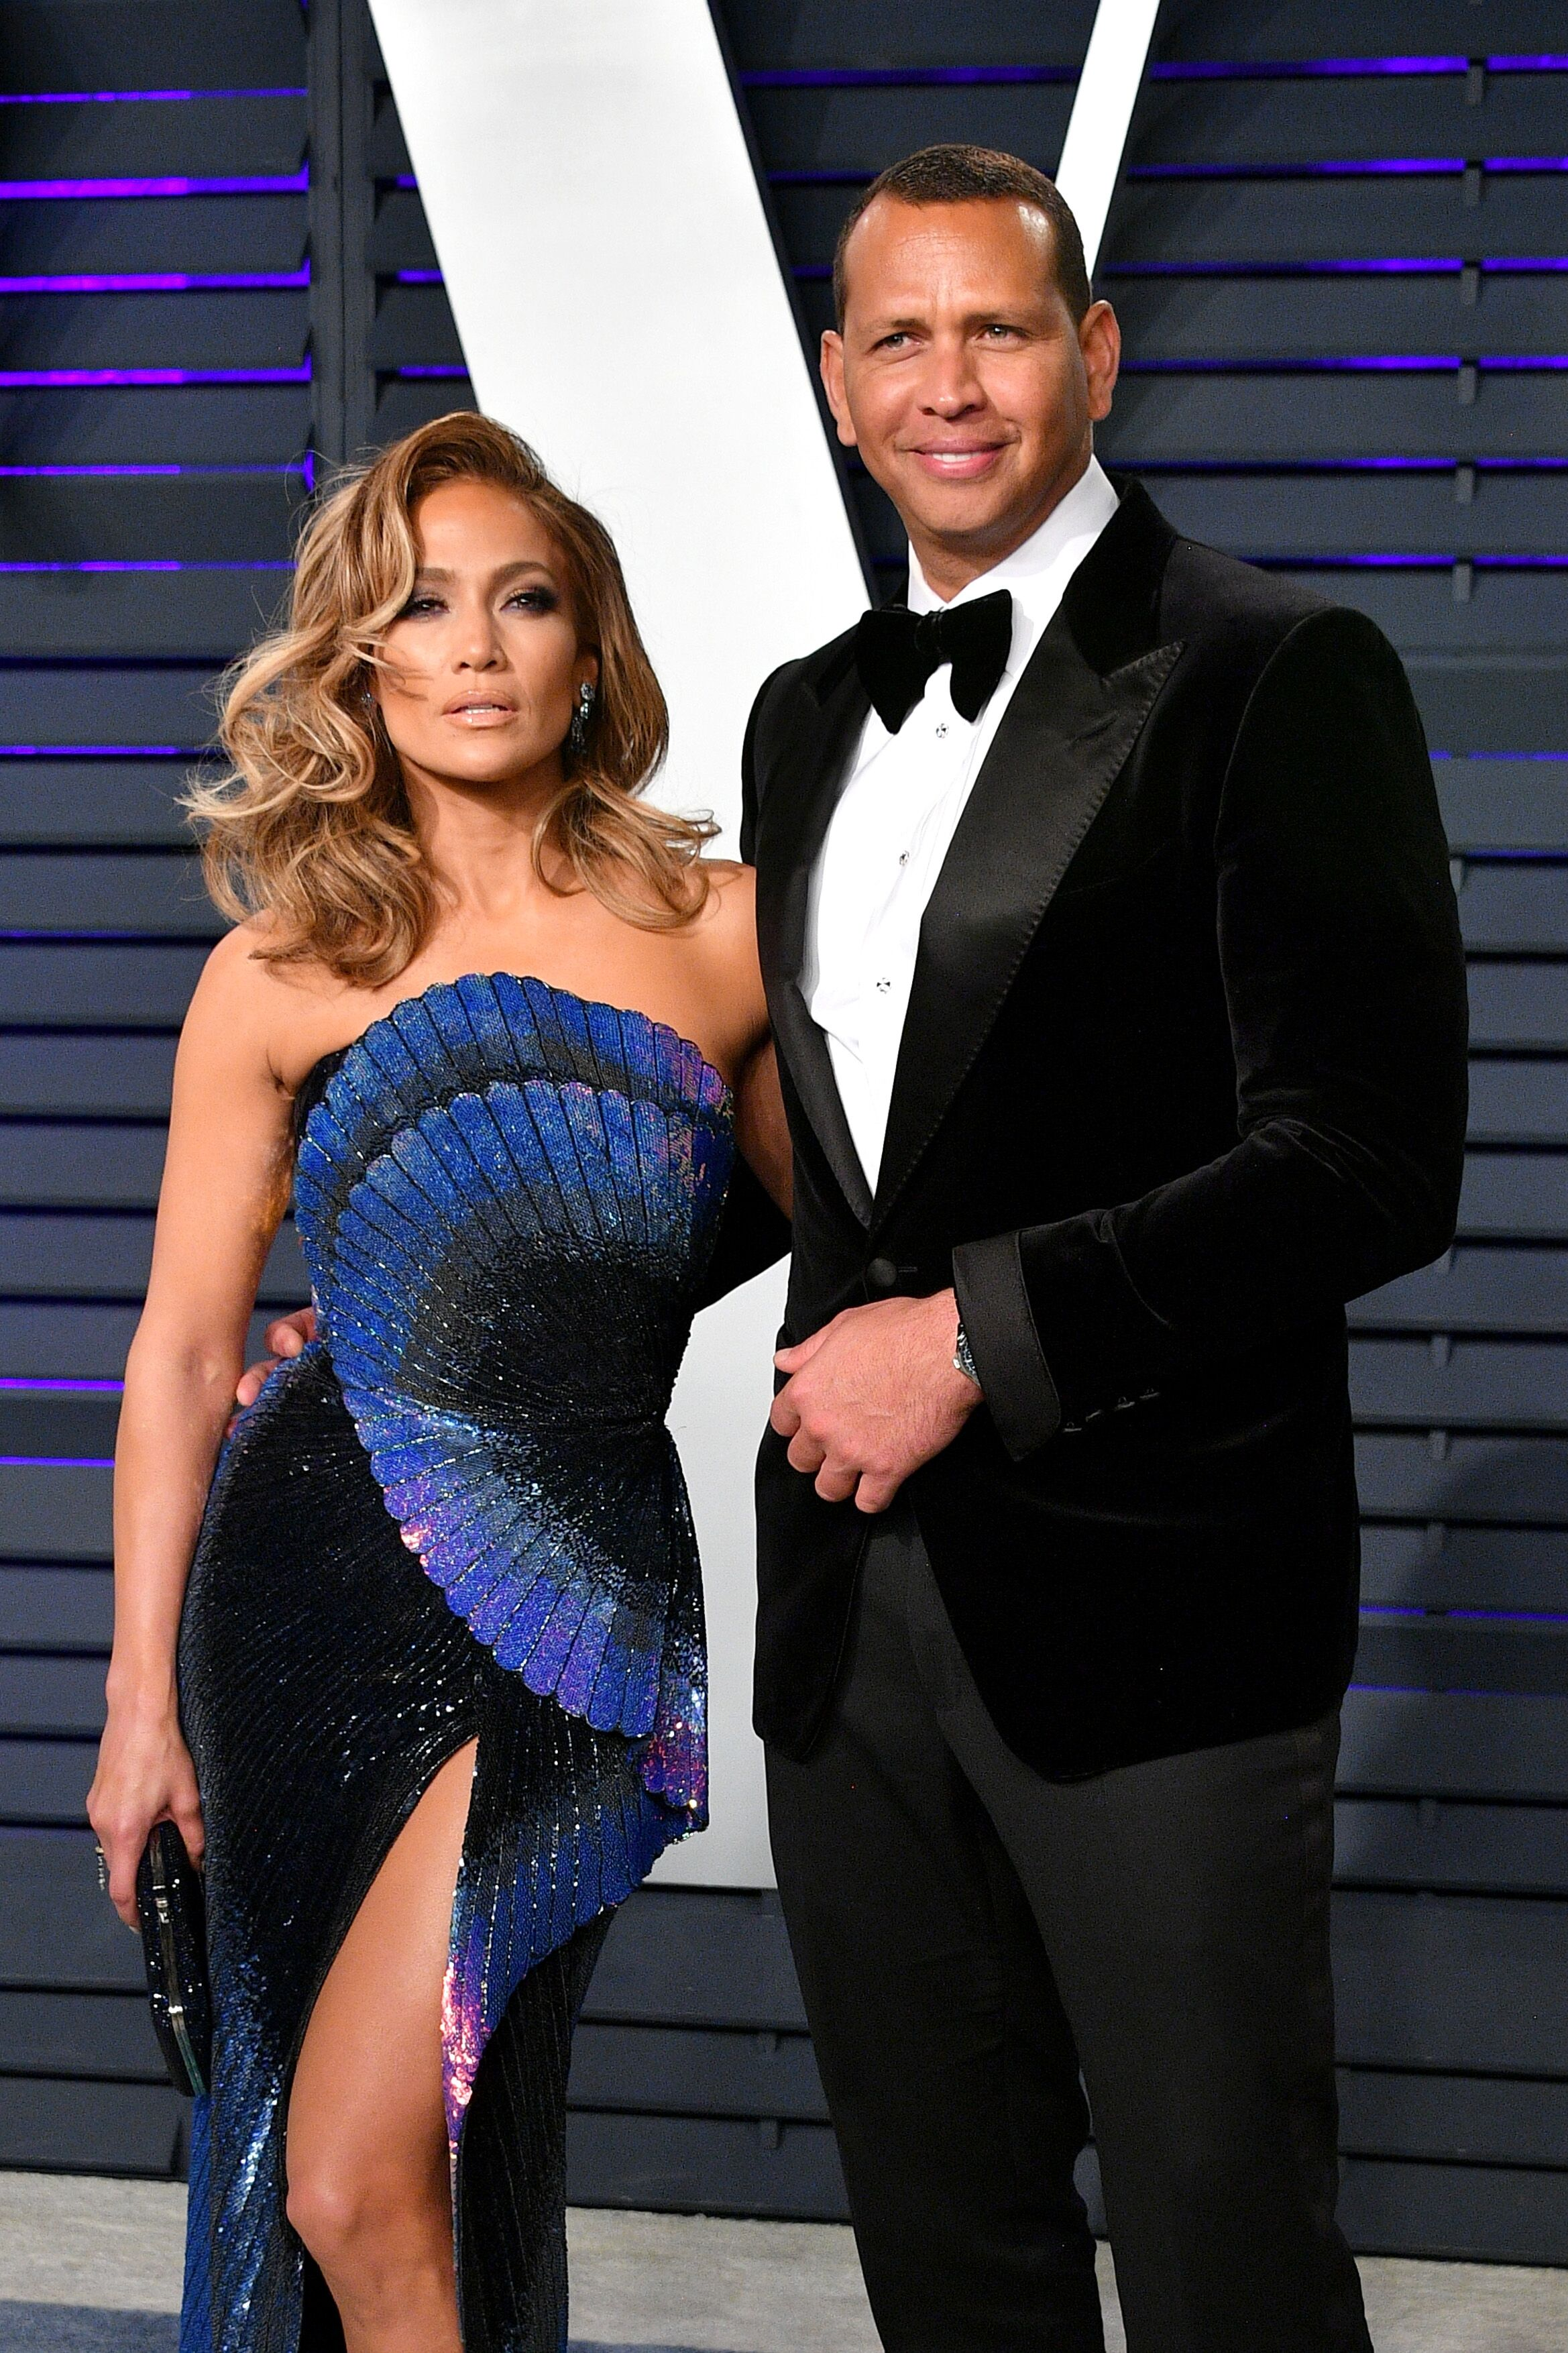 Jennifer Lopez (L) and Alex Rodriguez attend the 2019 Vanity Fair Oscar Party hosted by Radhika Jones at Wallis Annenberg Center for the Performing Arts on February 24, 2019 | Photo: Getty Images